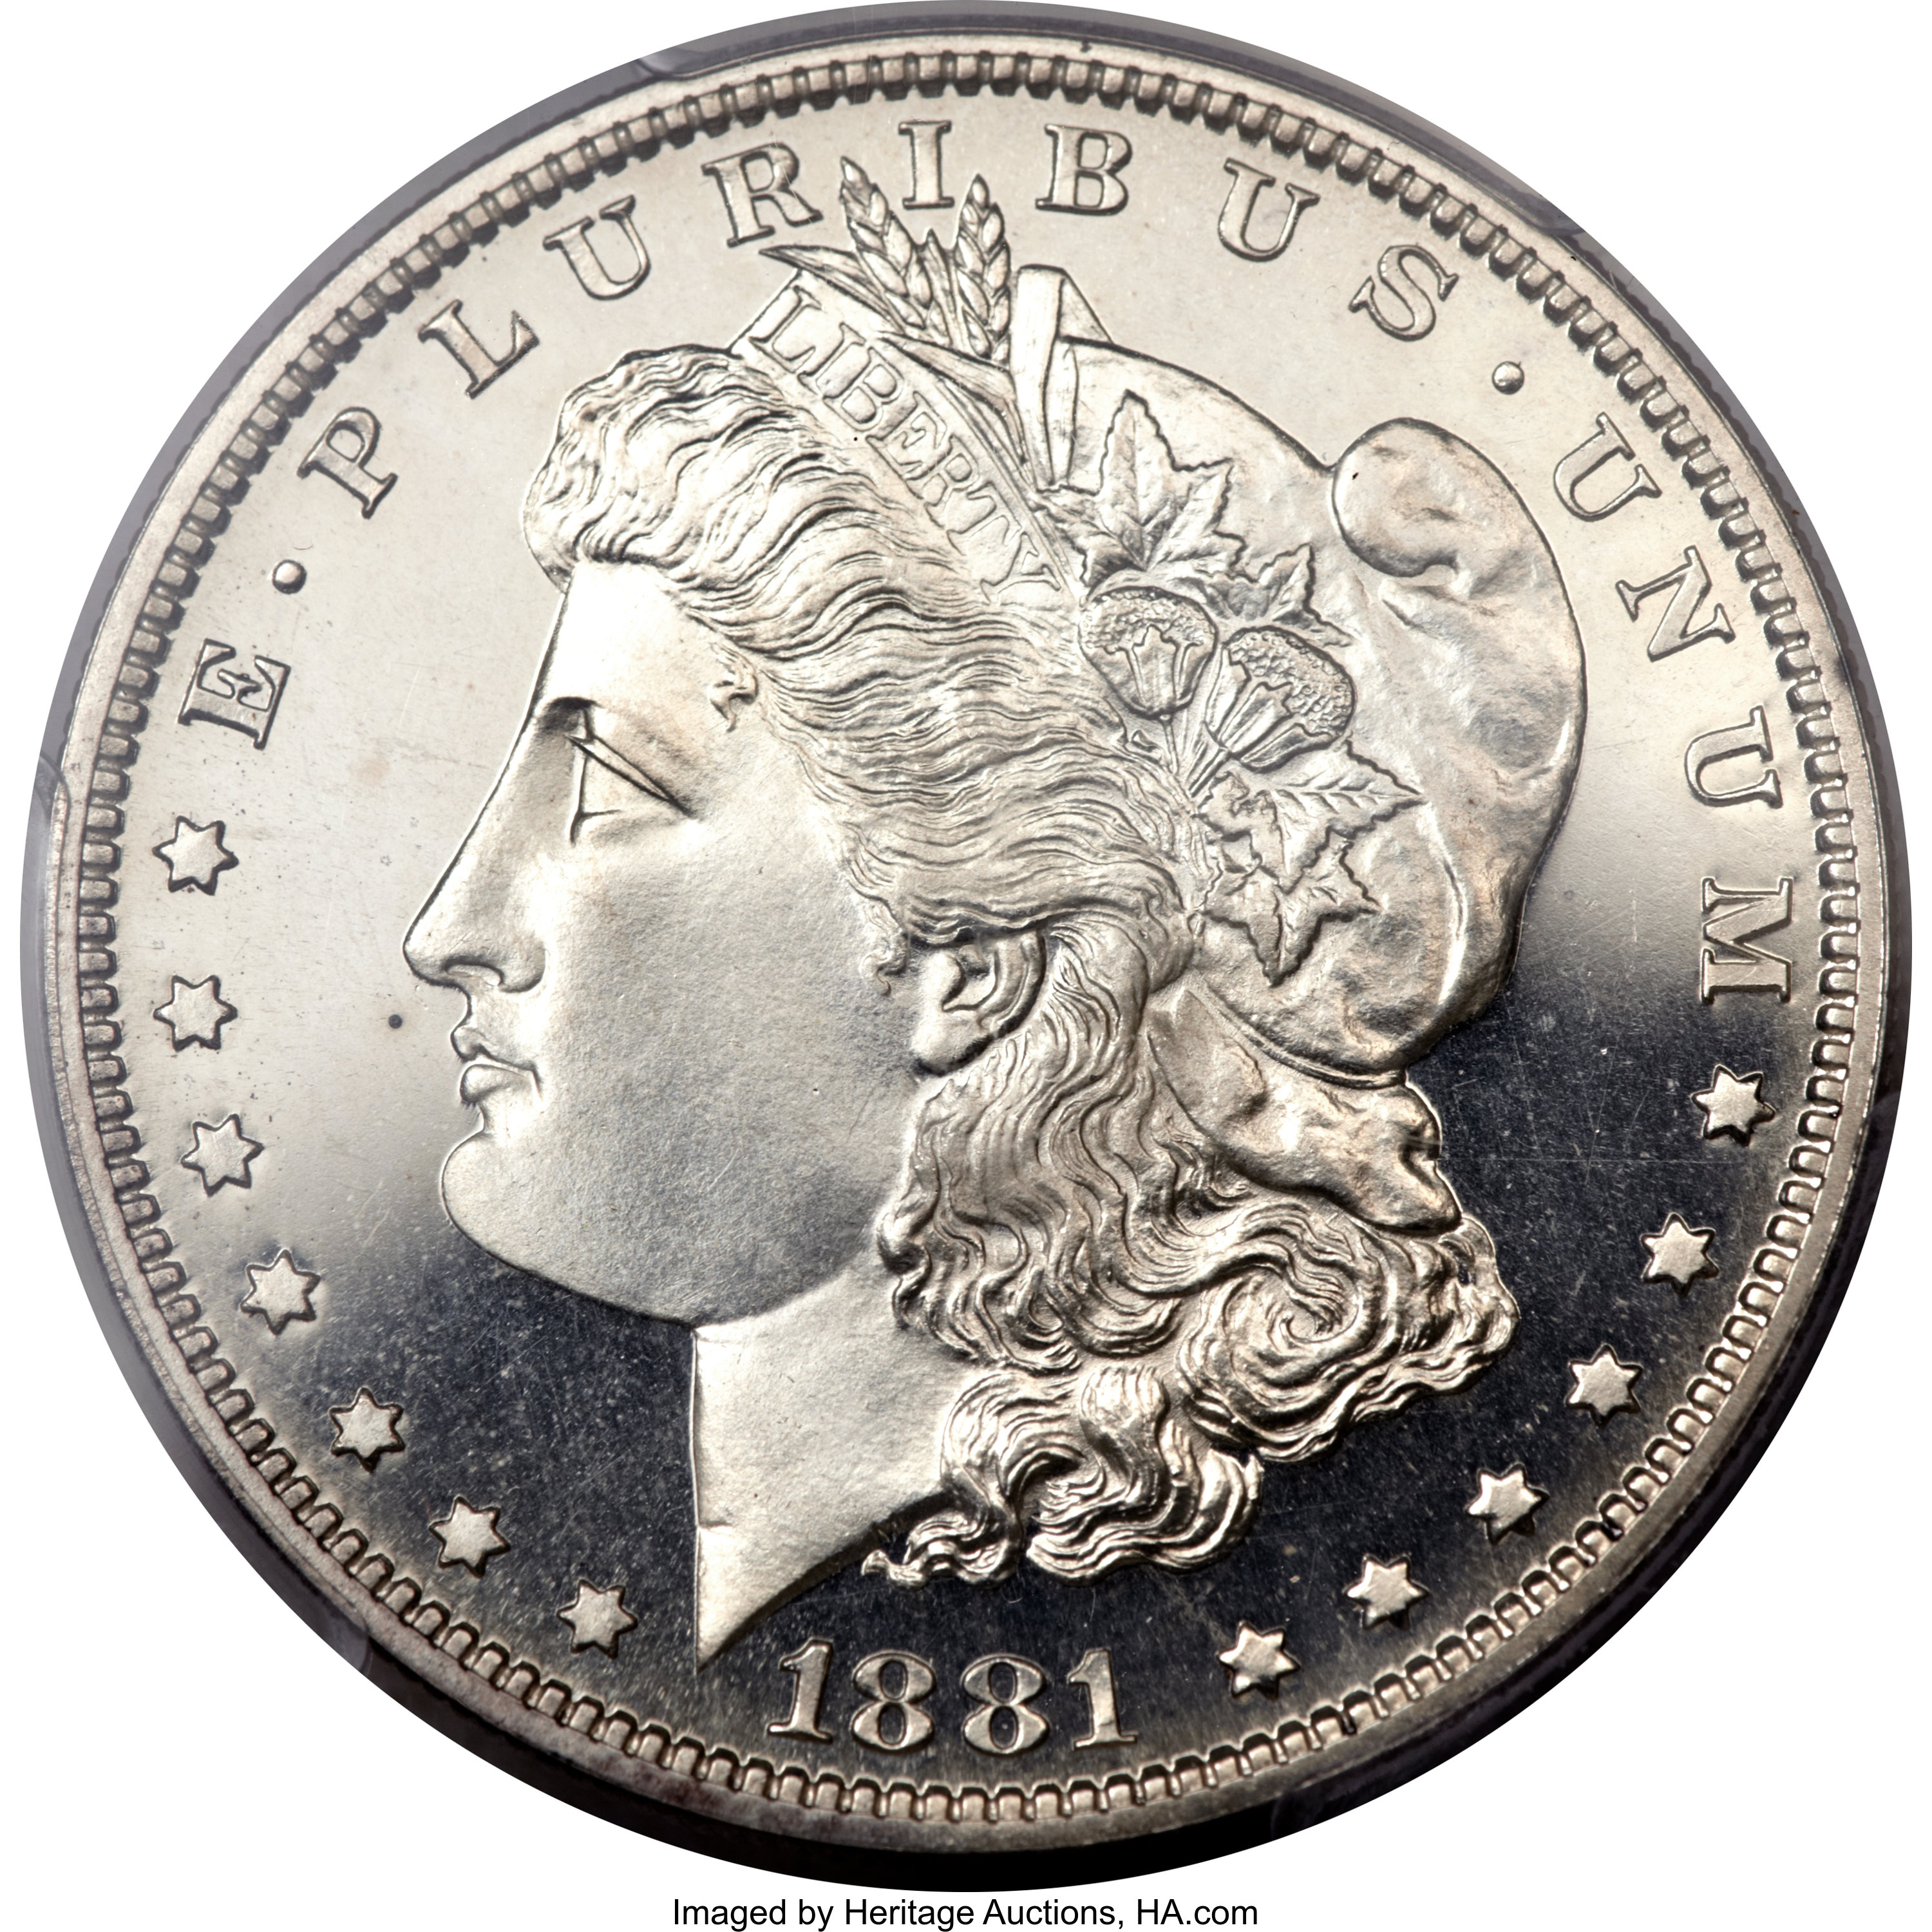 main image for Pricing for Cameo Proof Morgan Dollars Now Available Online at Greysheet